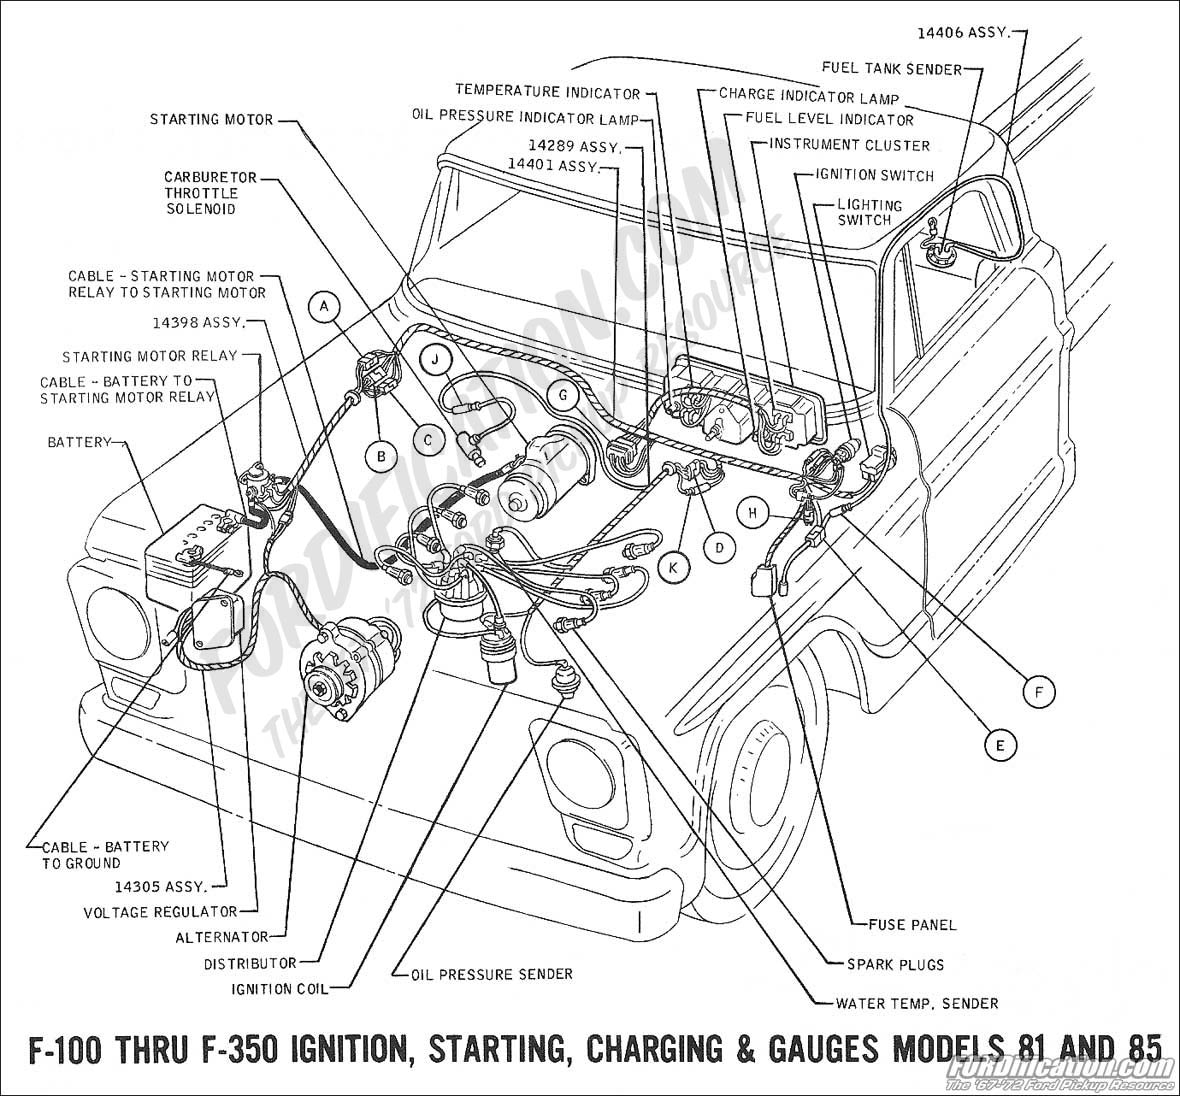 wiring 1969charging ford truck technical drawings and schematics section h wiring ford truck wiring diagrams at gsmportal.co